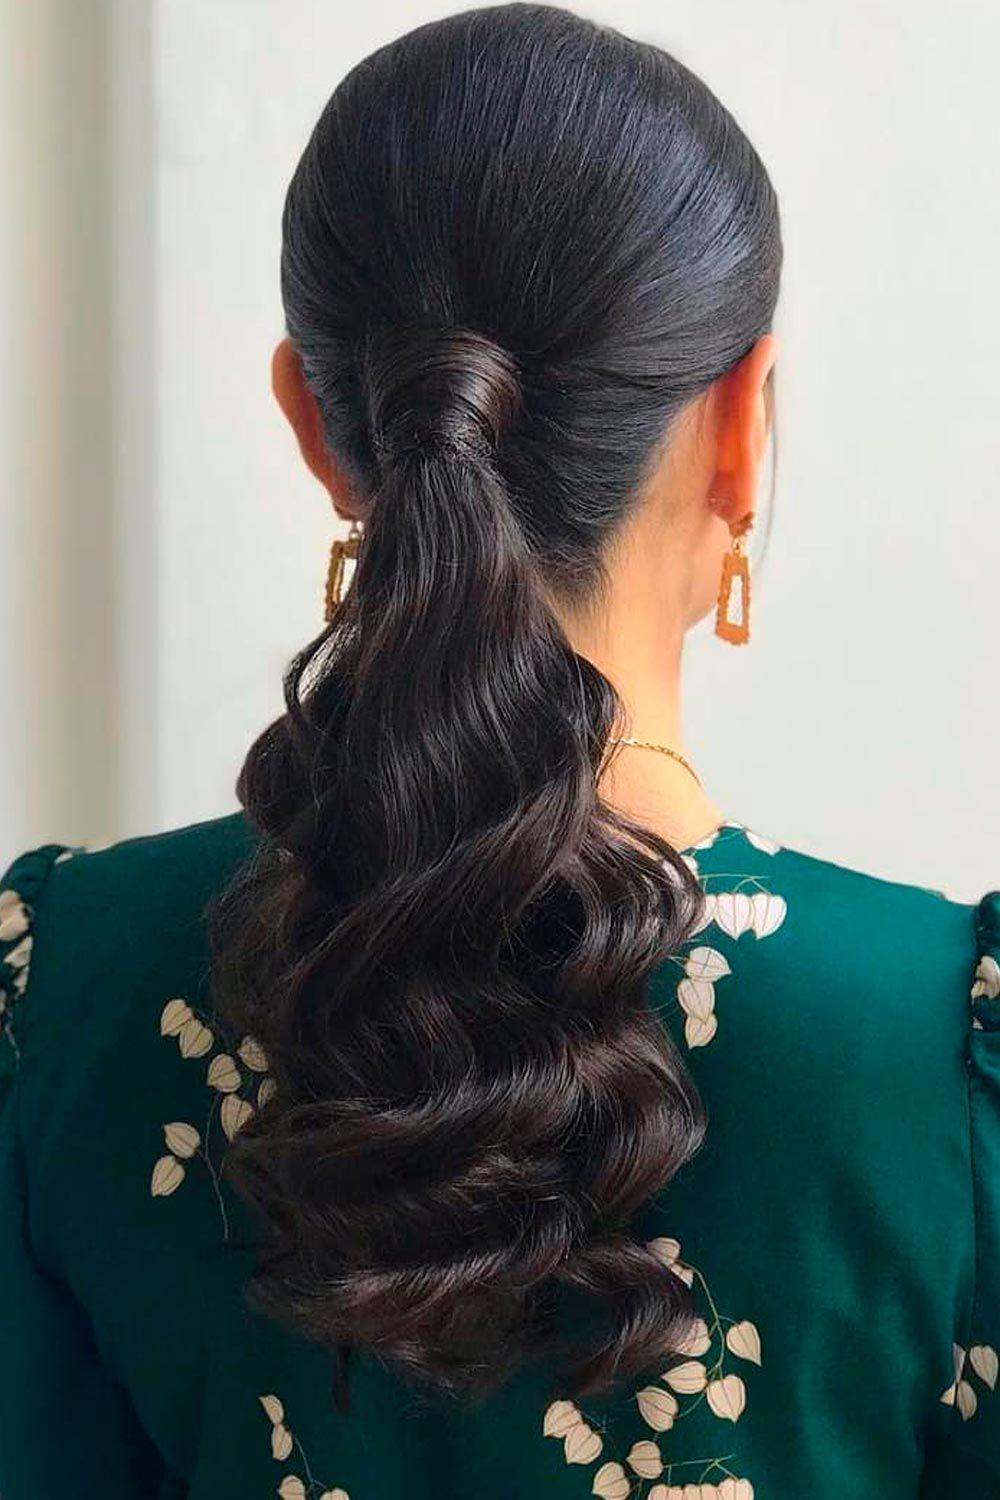 Tips On Getting A Perfect Ponytail